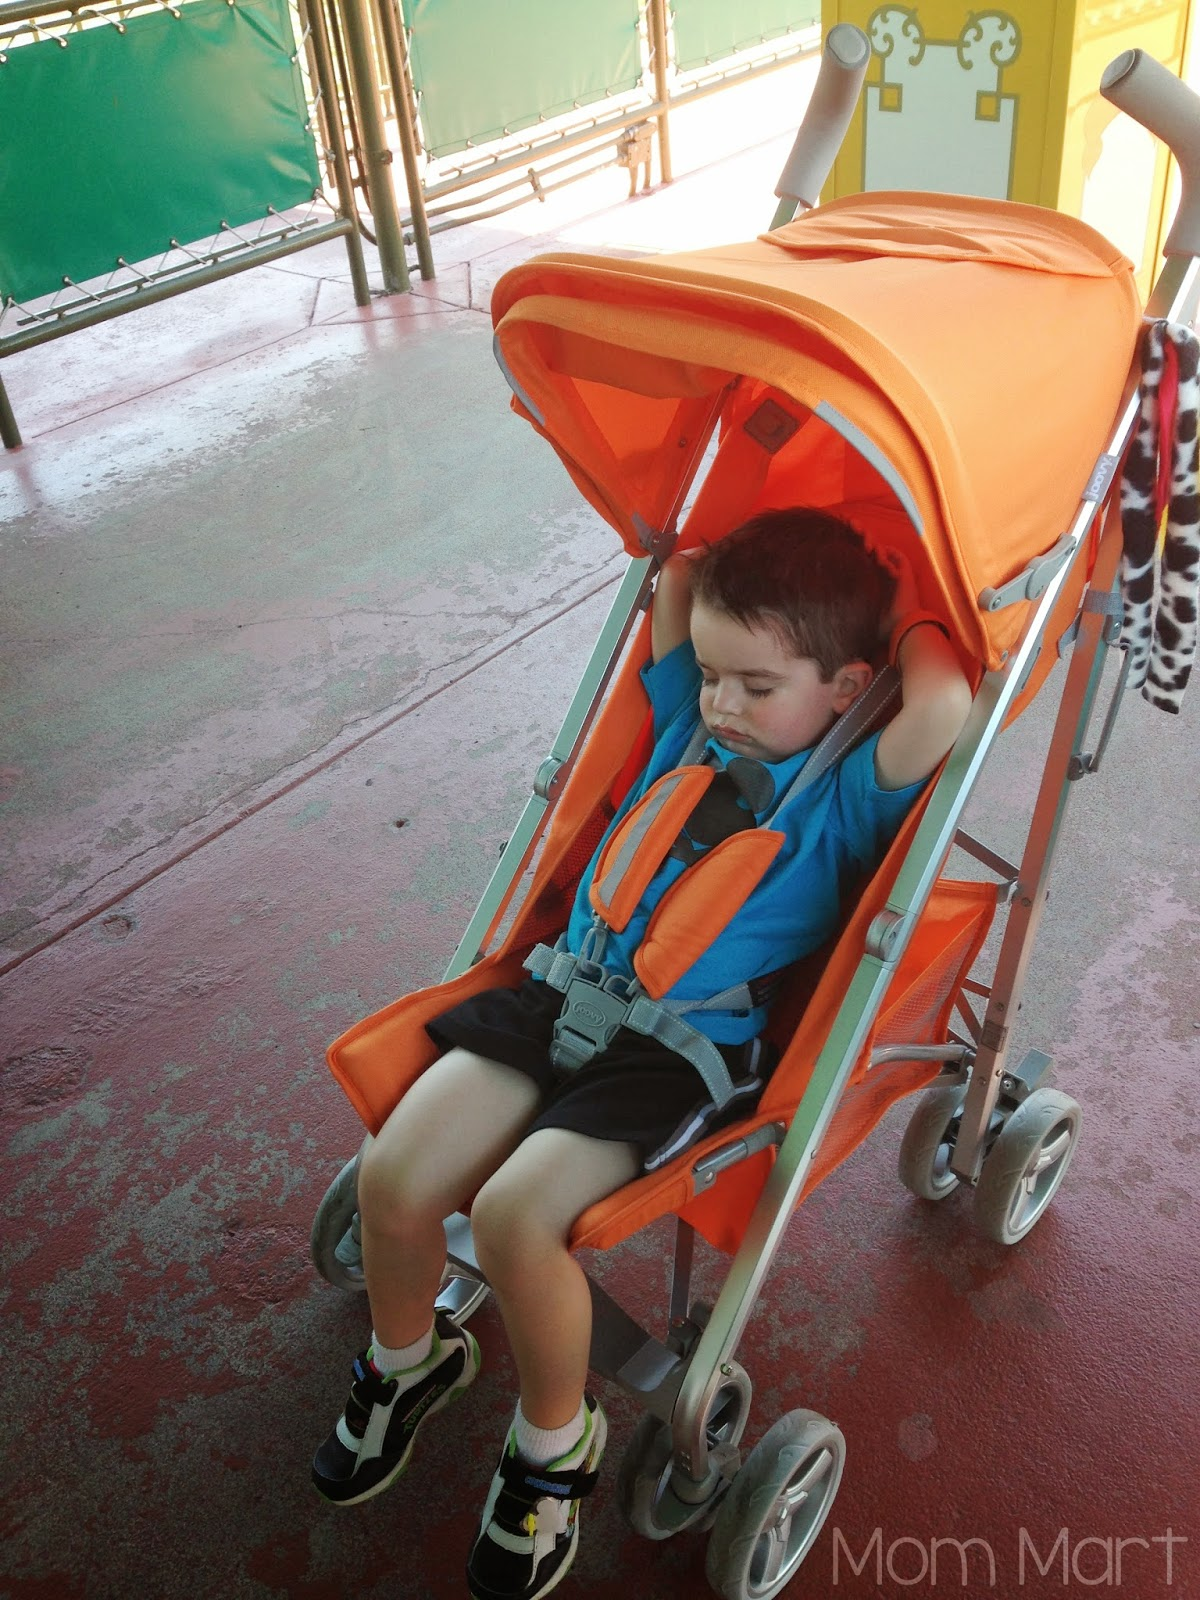 Strollers at Disney World #Disney #Strollers #TipsAndTricks waiting in the stroller for Disney Transportation {boat ride}